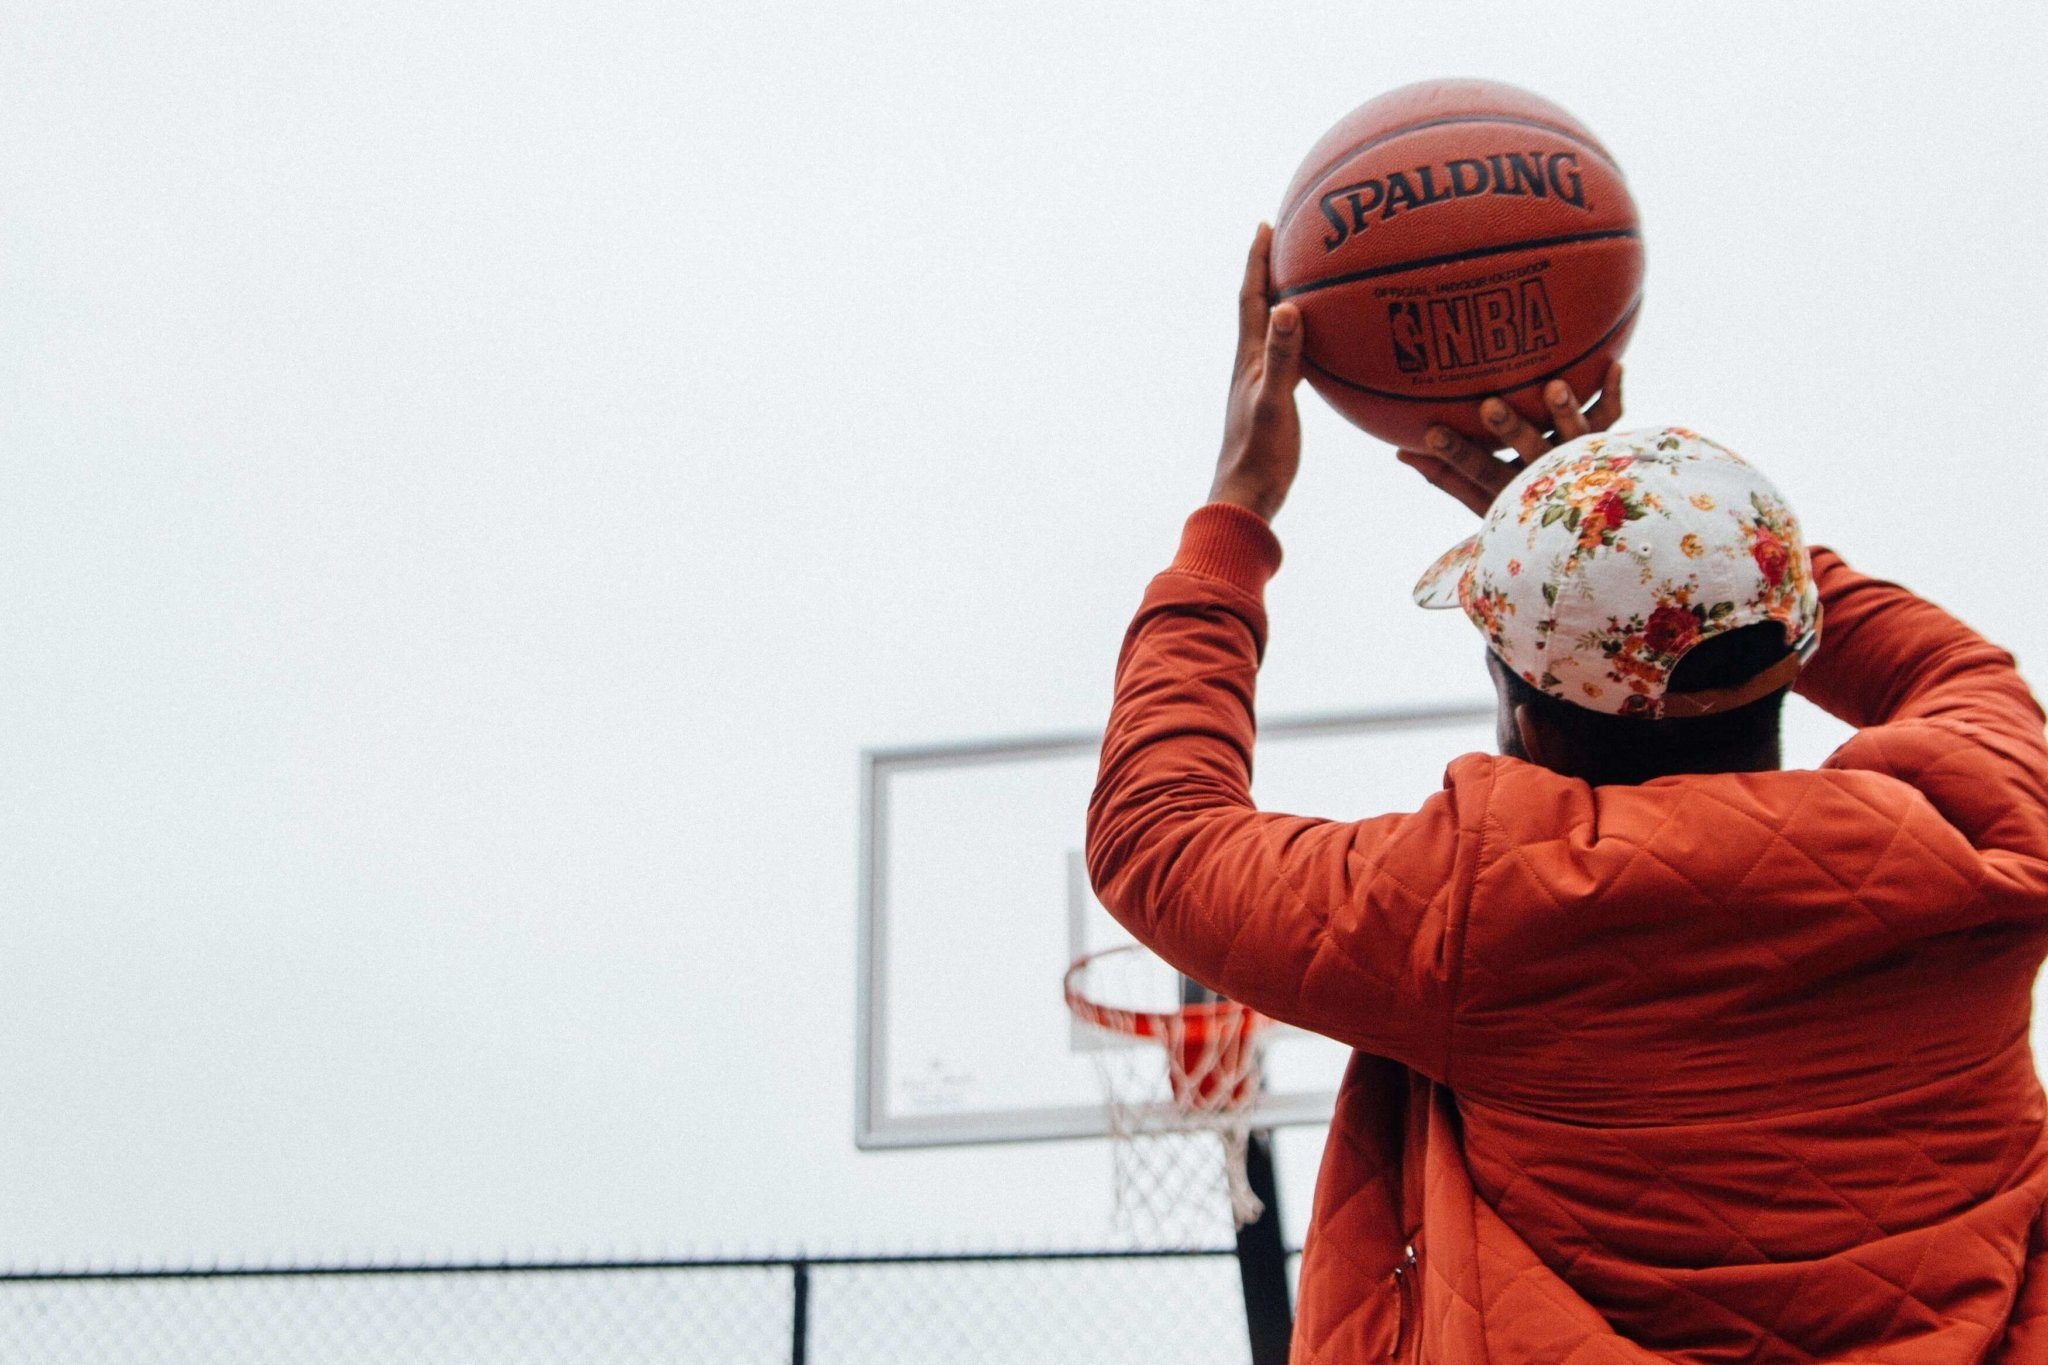 A person wearing an orange jacket and cap holding a basketball